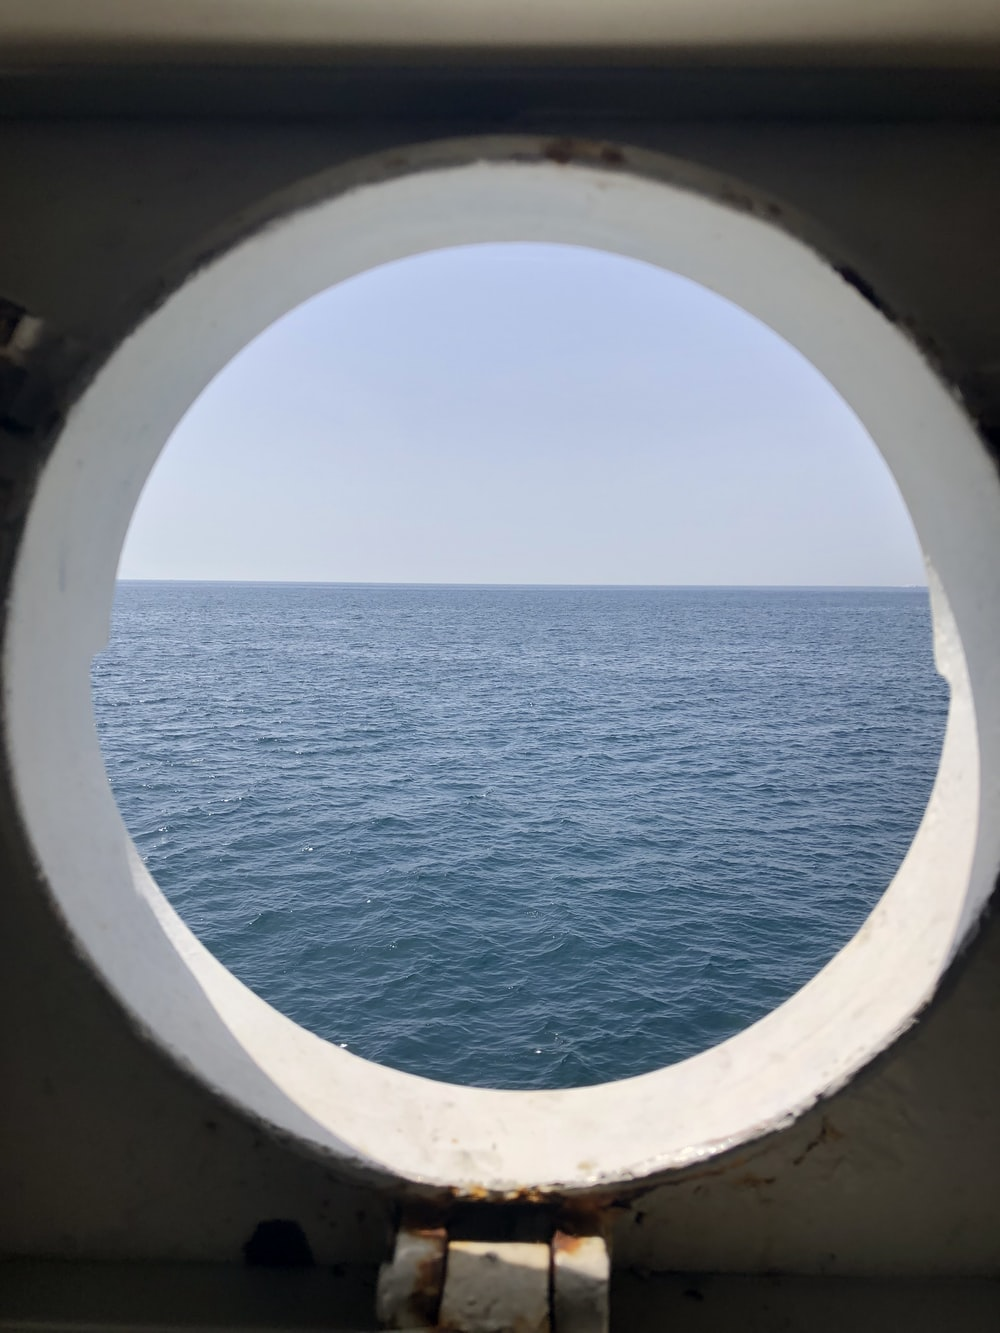 window showing sea during daytime